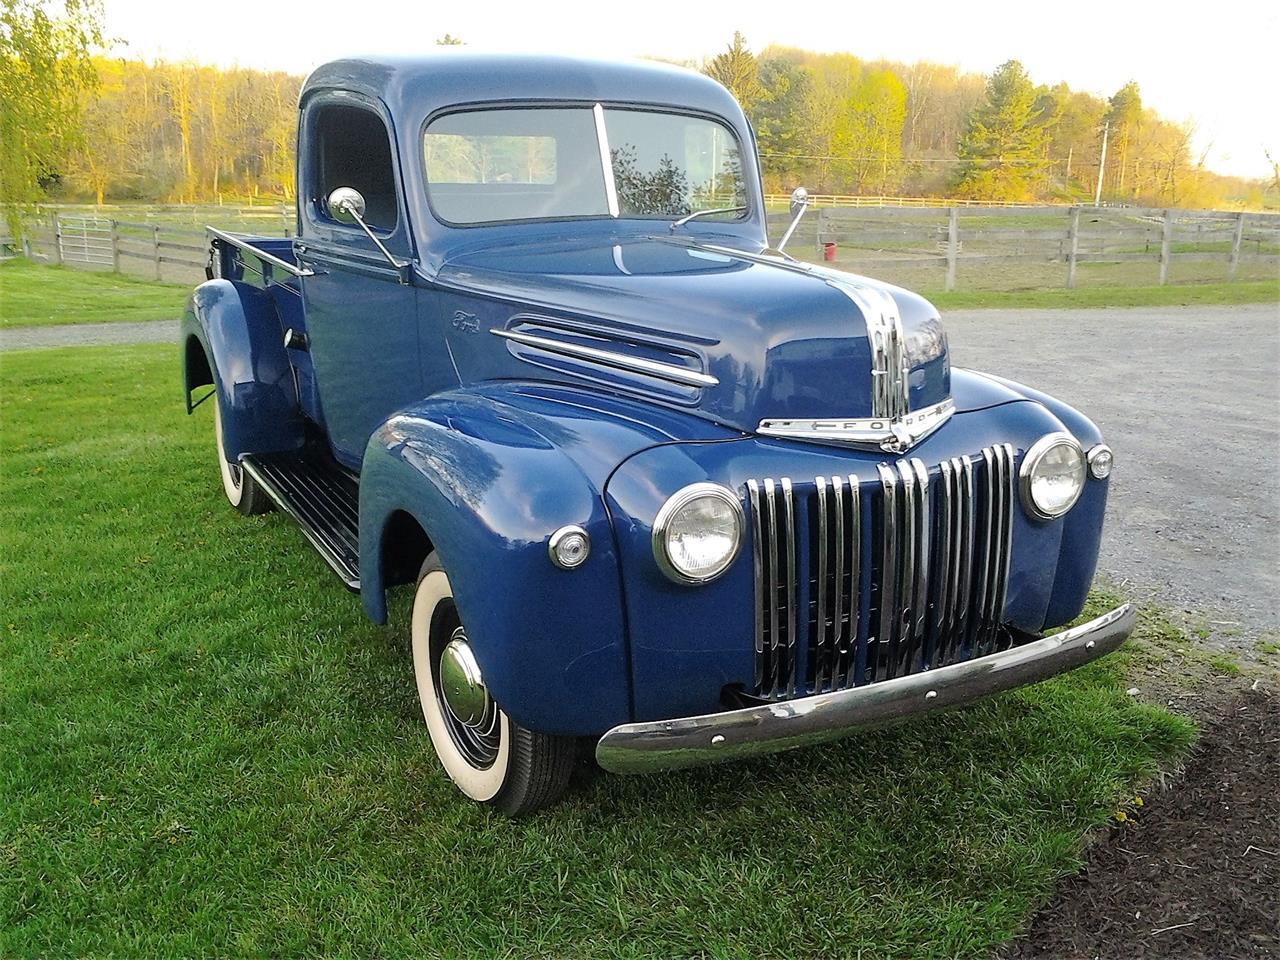 Large picture of 46 pickup l73x